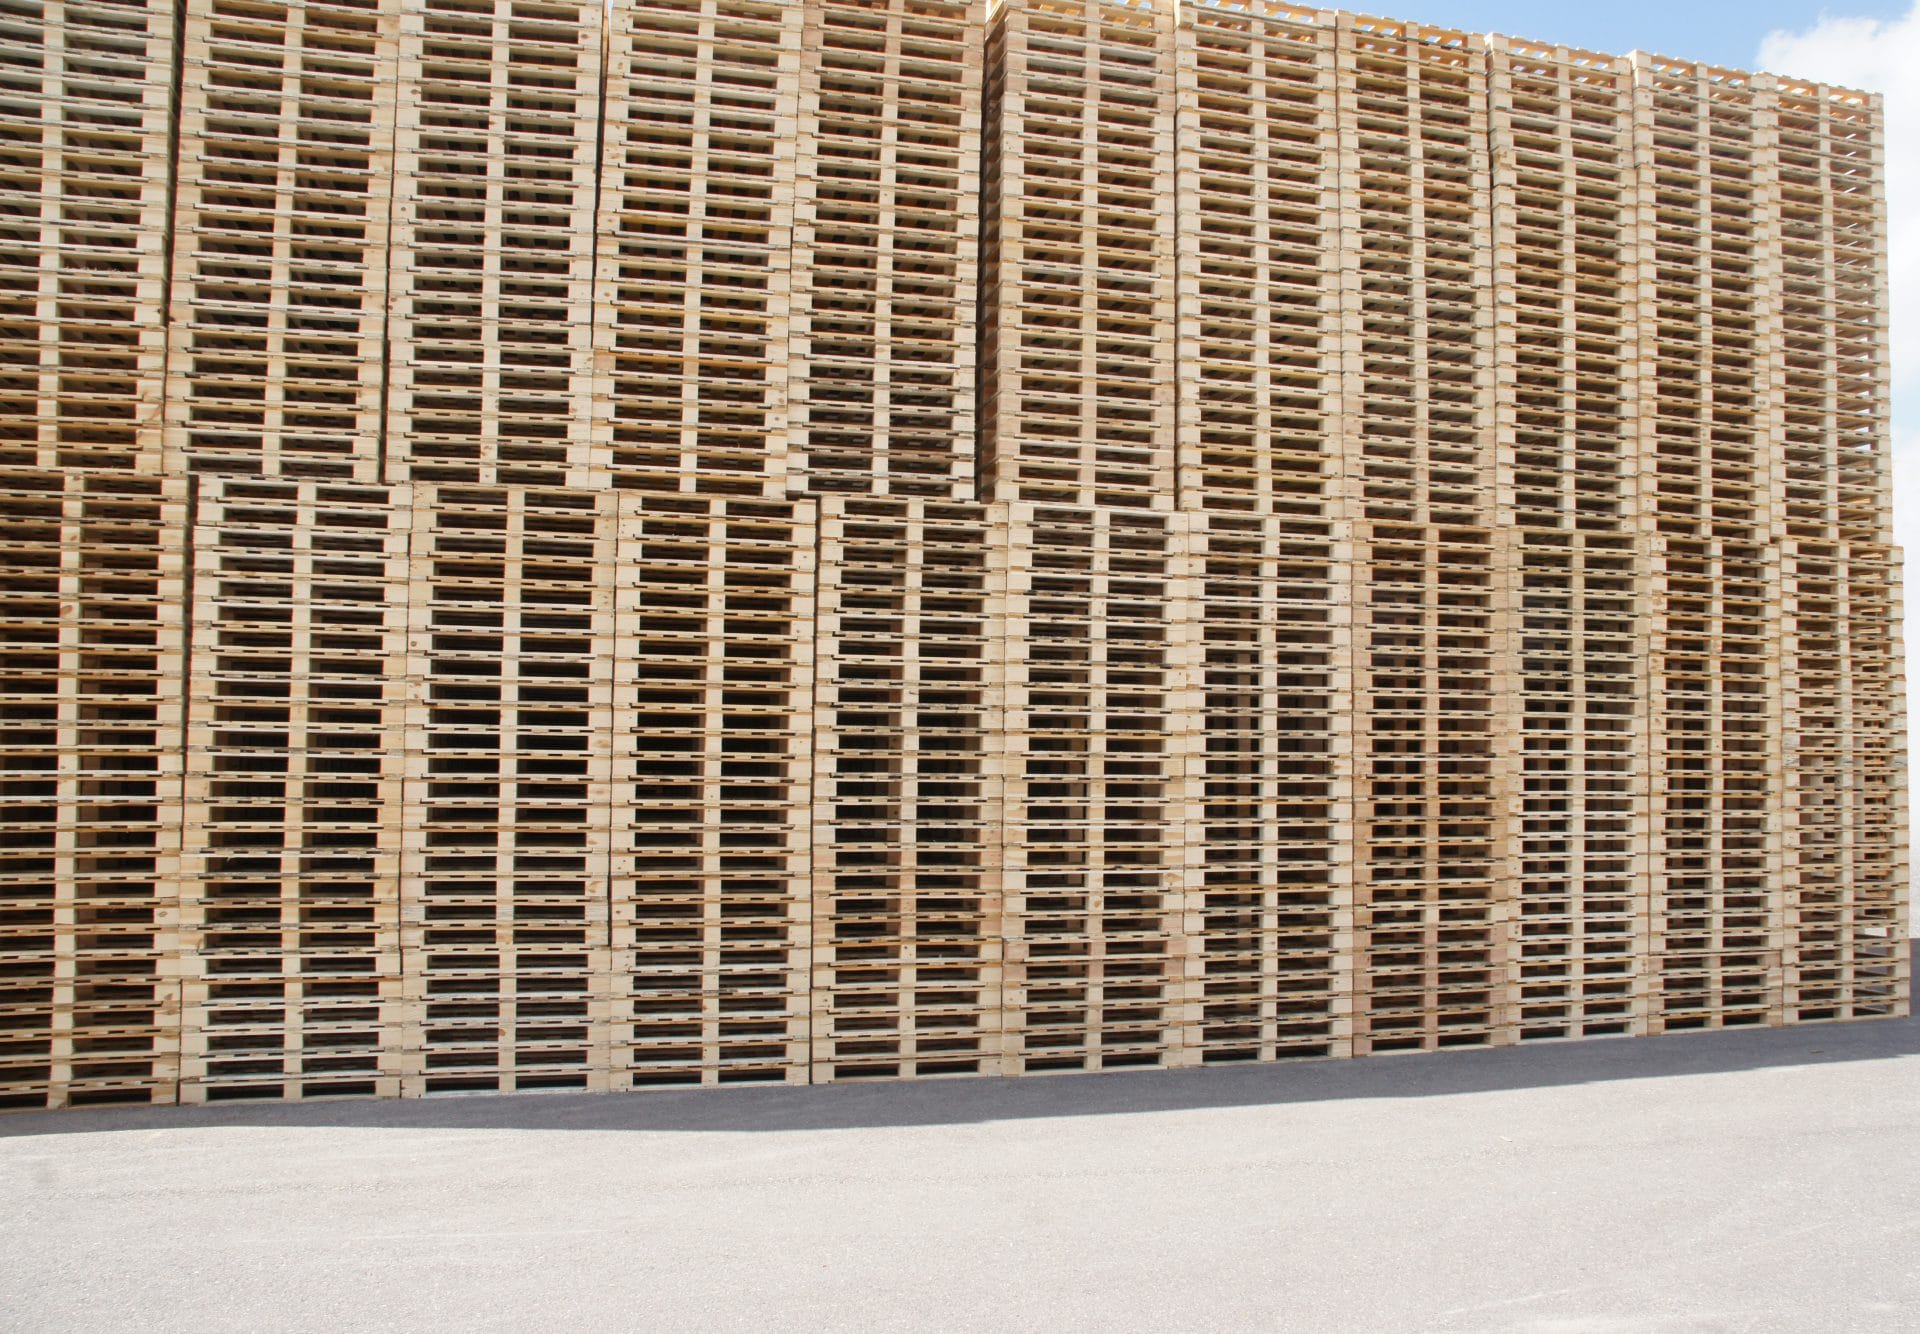 Stapels pallets